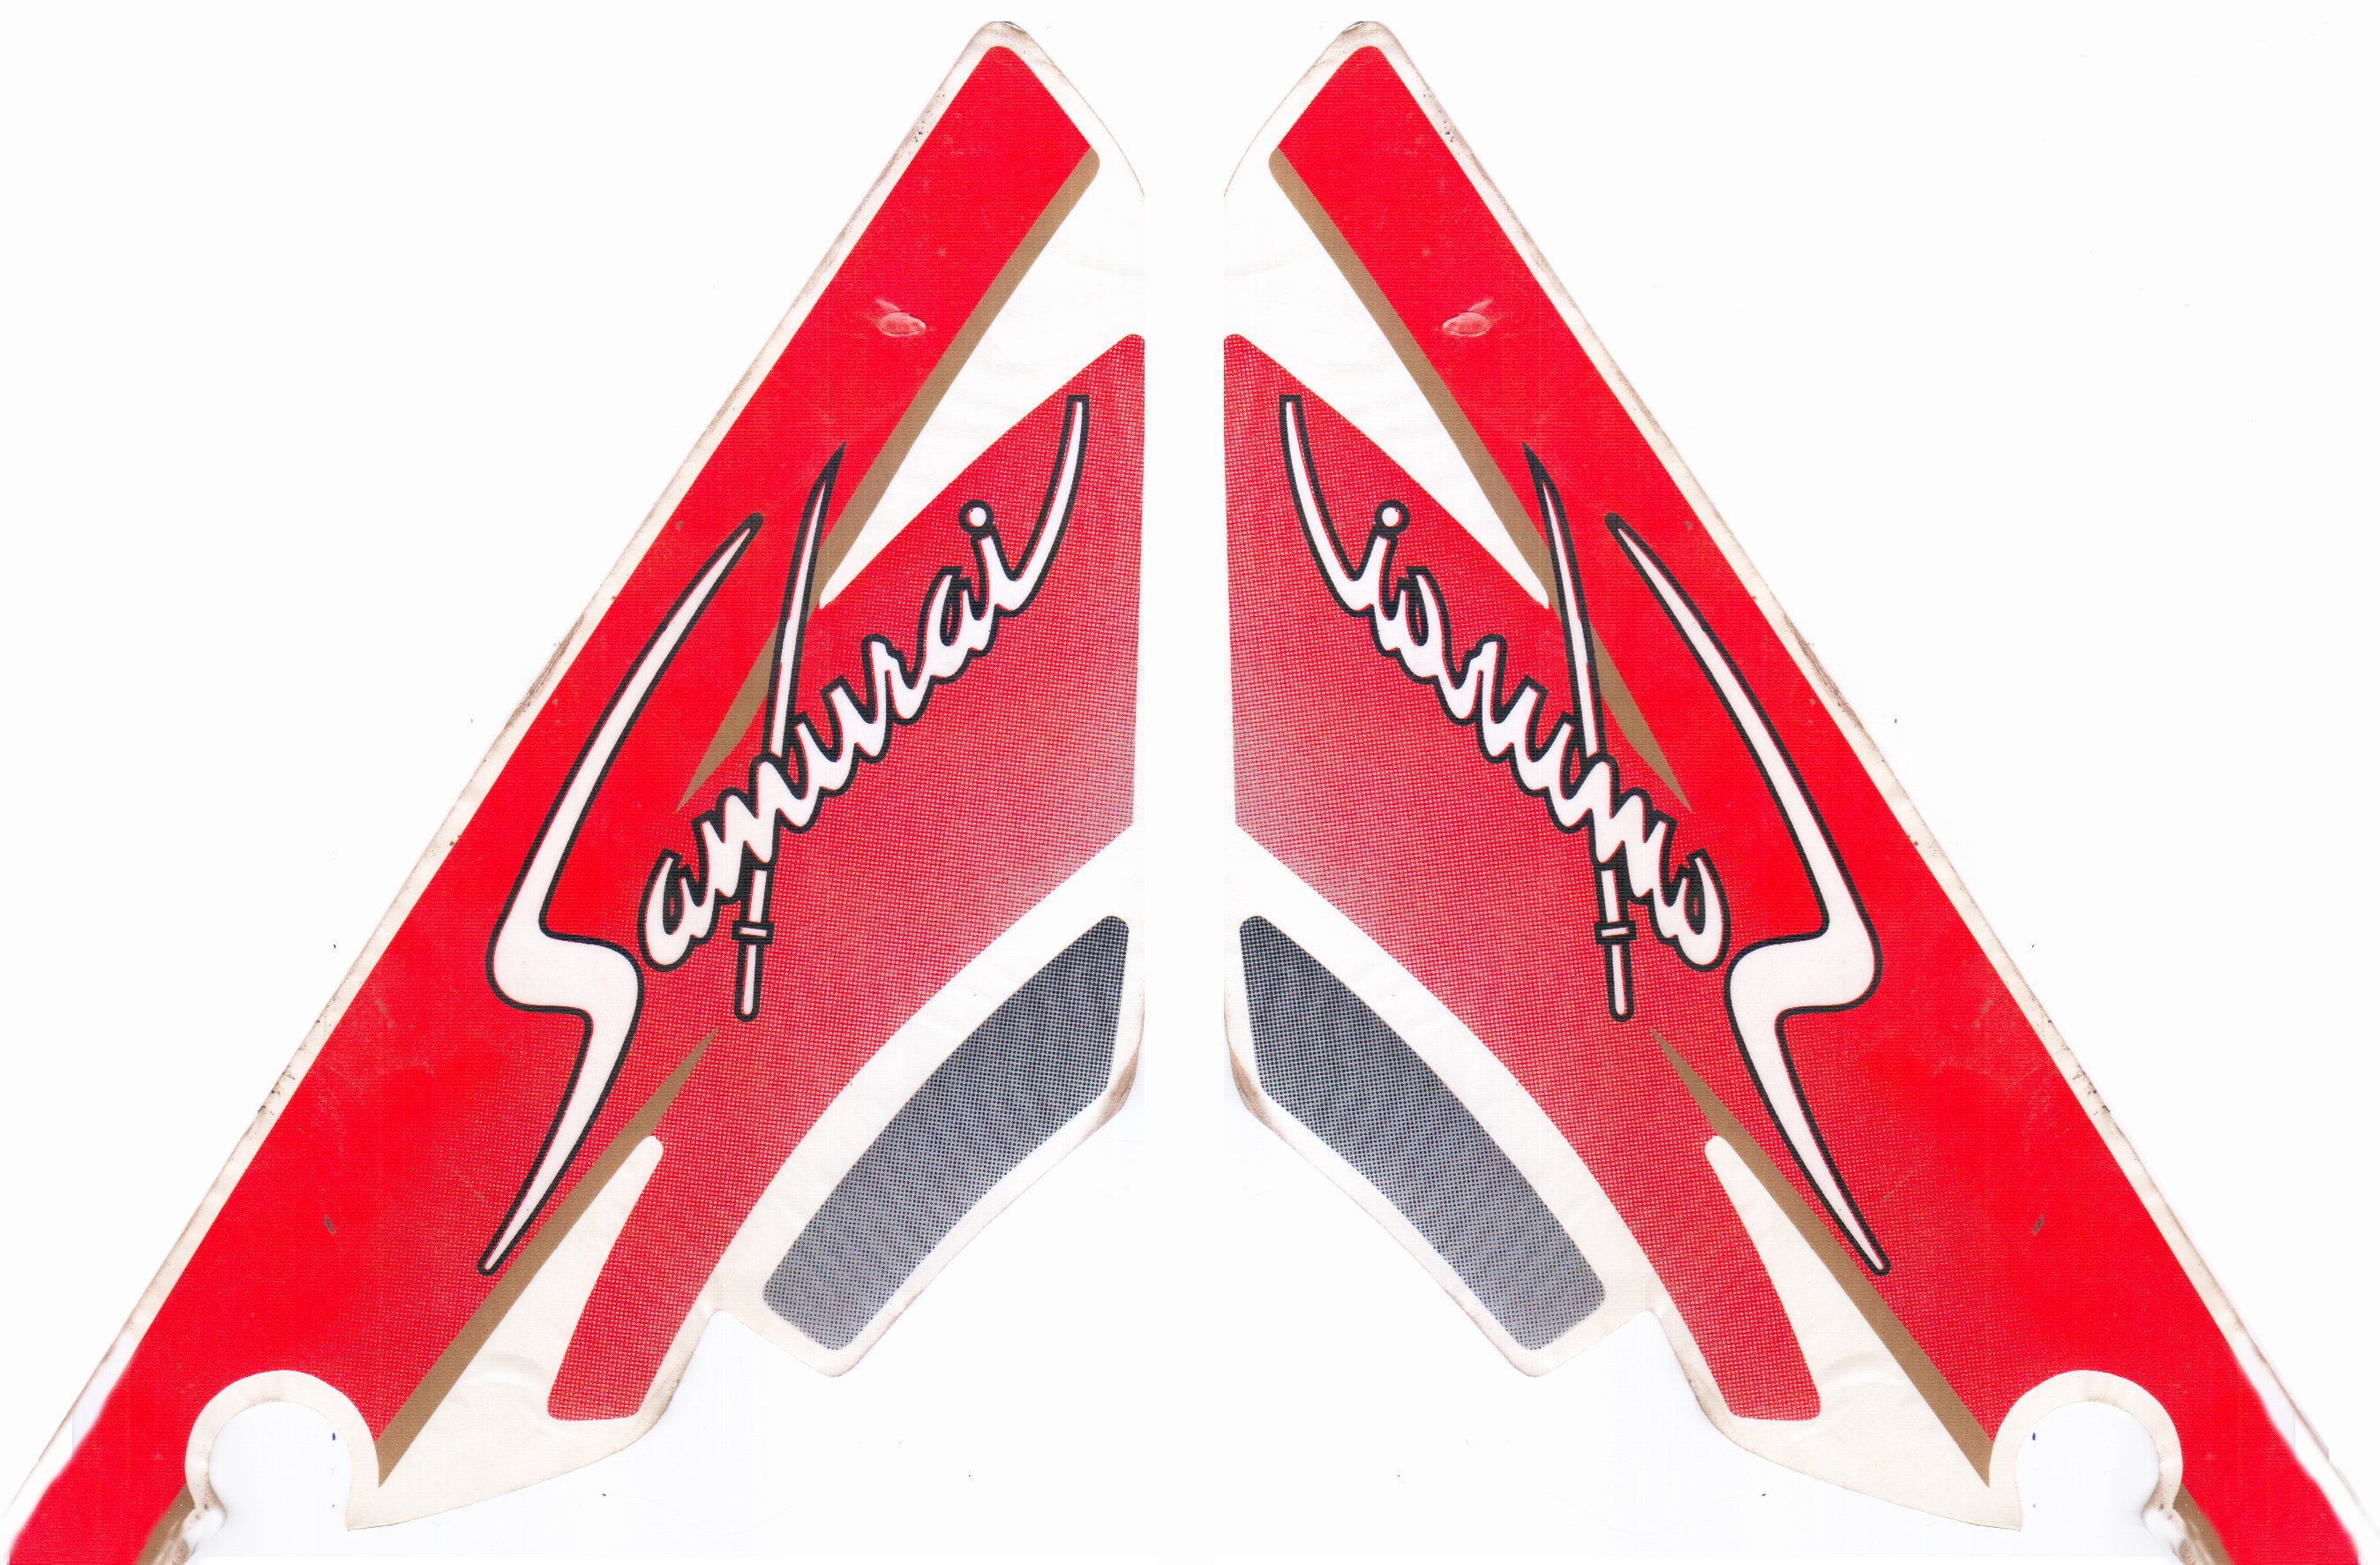 Bike stickers design for honda shine - Shop At Suzuki Samurai Bike Parts And Accessories Online Store Safexbikes Com